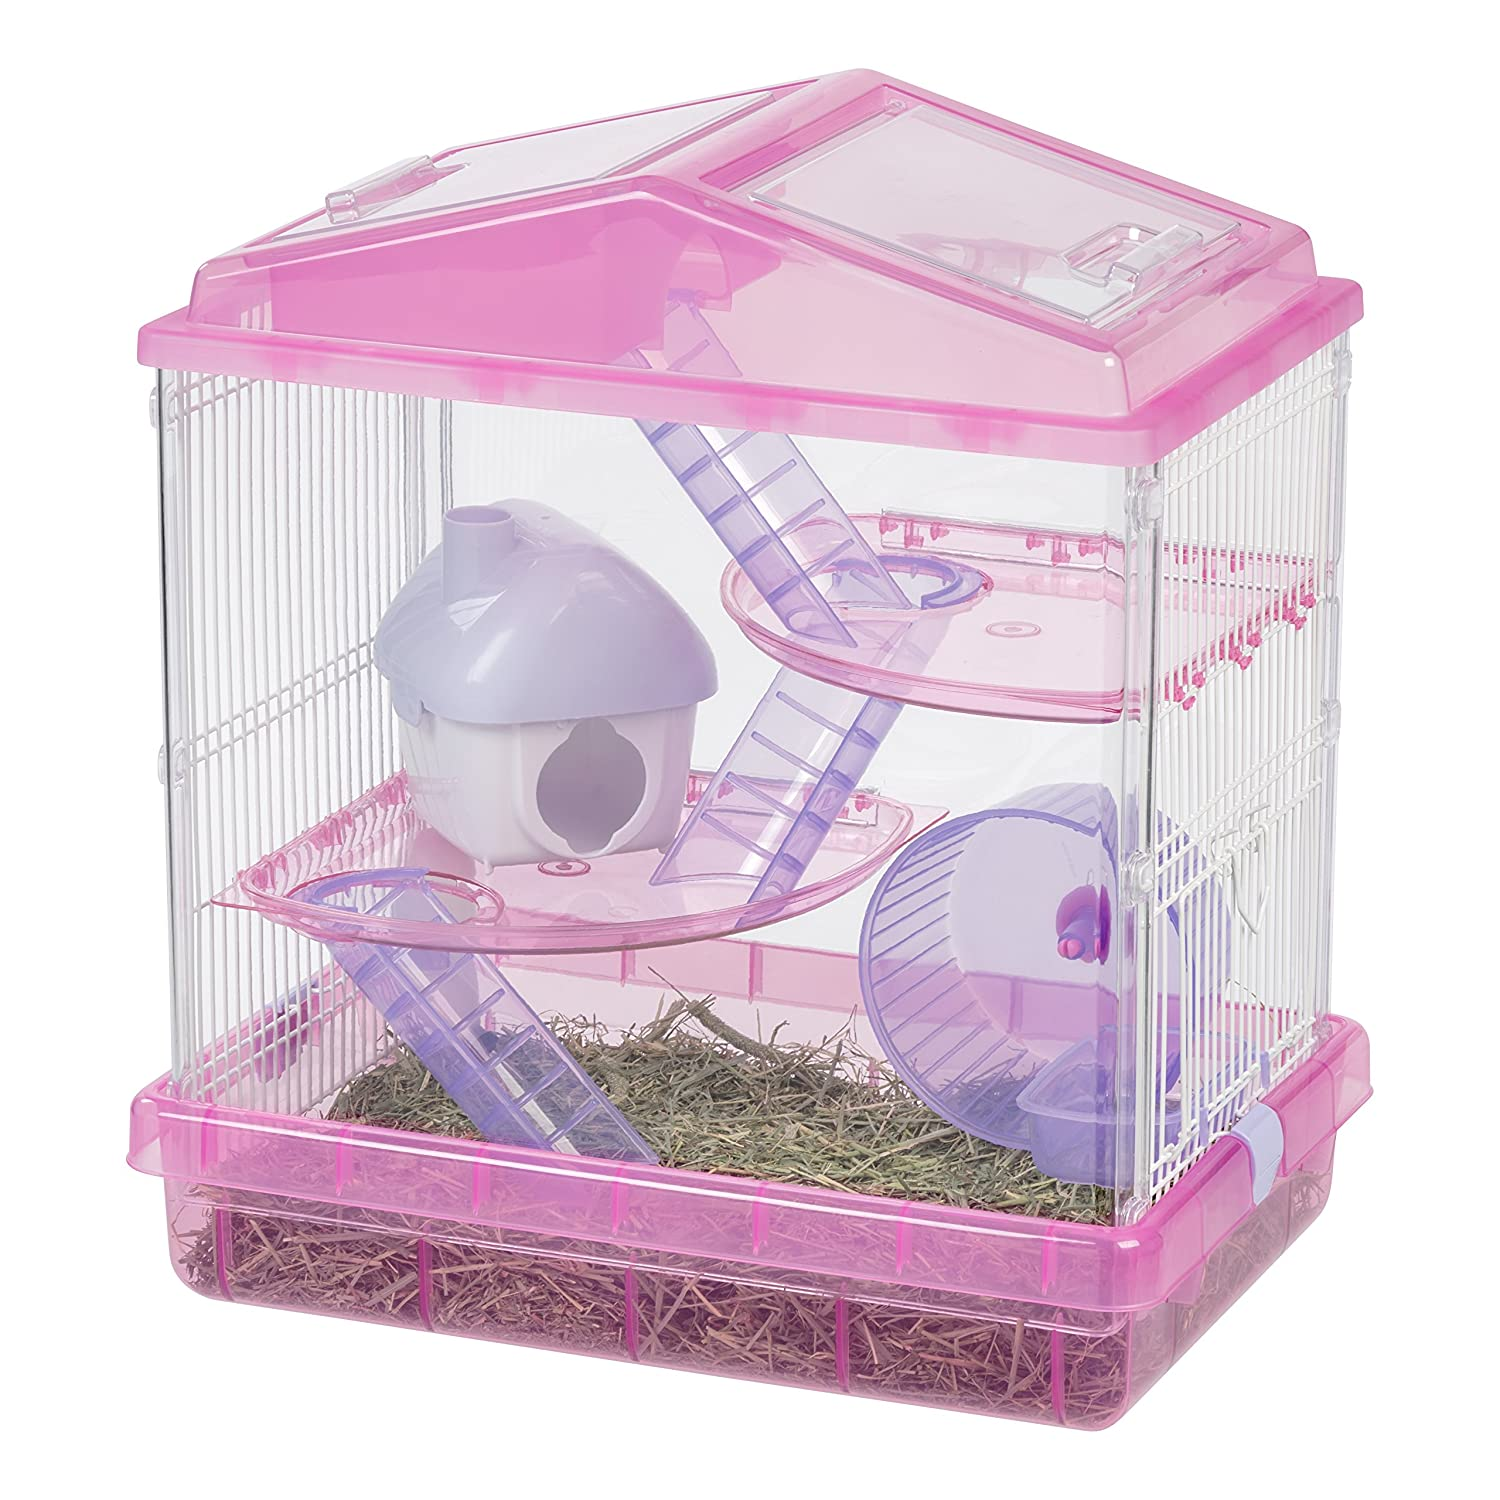 IRIS USA Hamster and Gerbil Pet Cage, 3-Tier, Red 301260